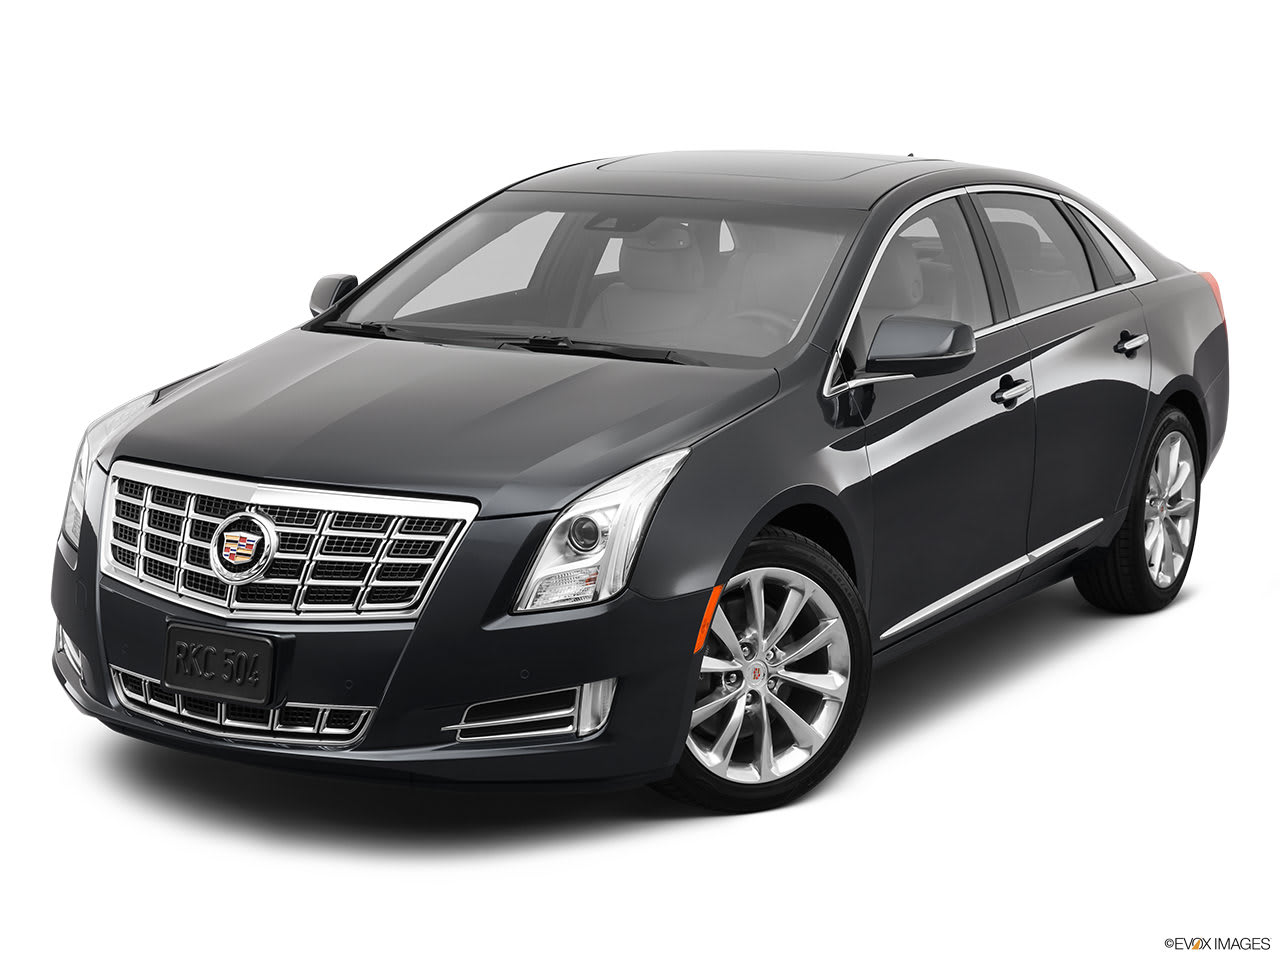 A Buyer's Guide to the 2013 Cadillac XTS | YourMechanic Advice